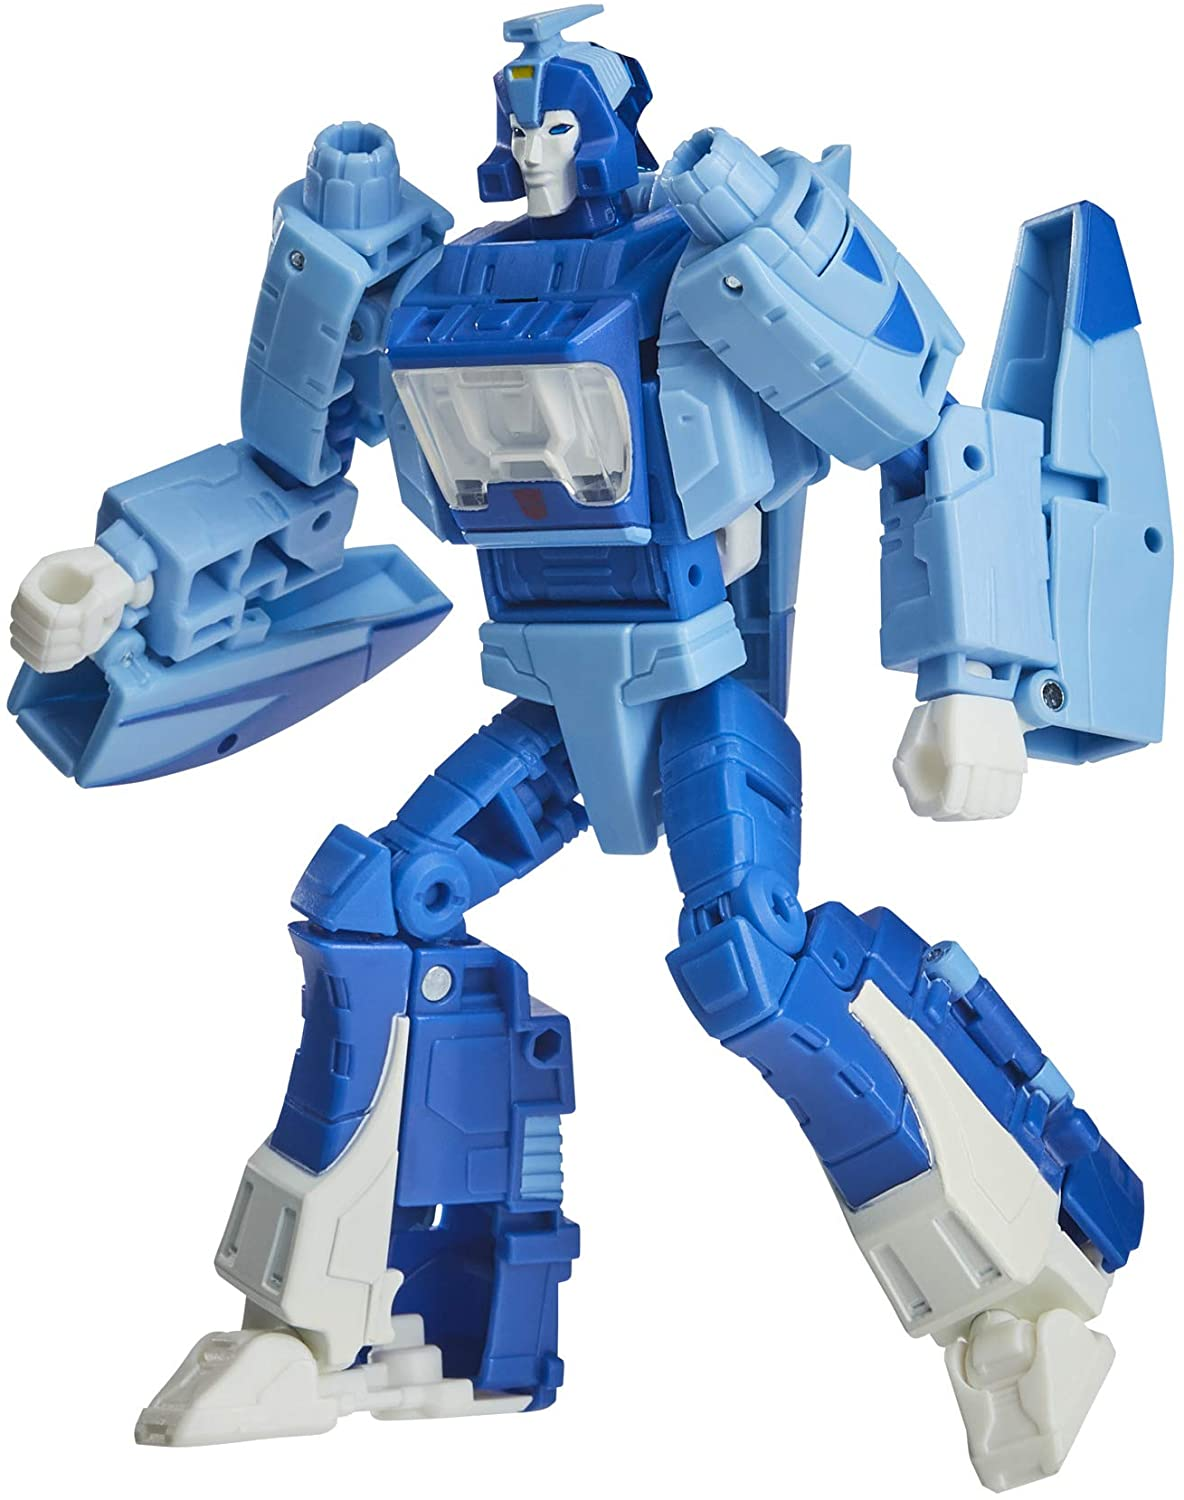 Transformers Toys Studio Series 86-03 Deluxe Class The Transformers The Movie 1986 Blurr Action Figure Ages 8 and Up 4.5-inch